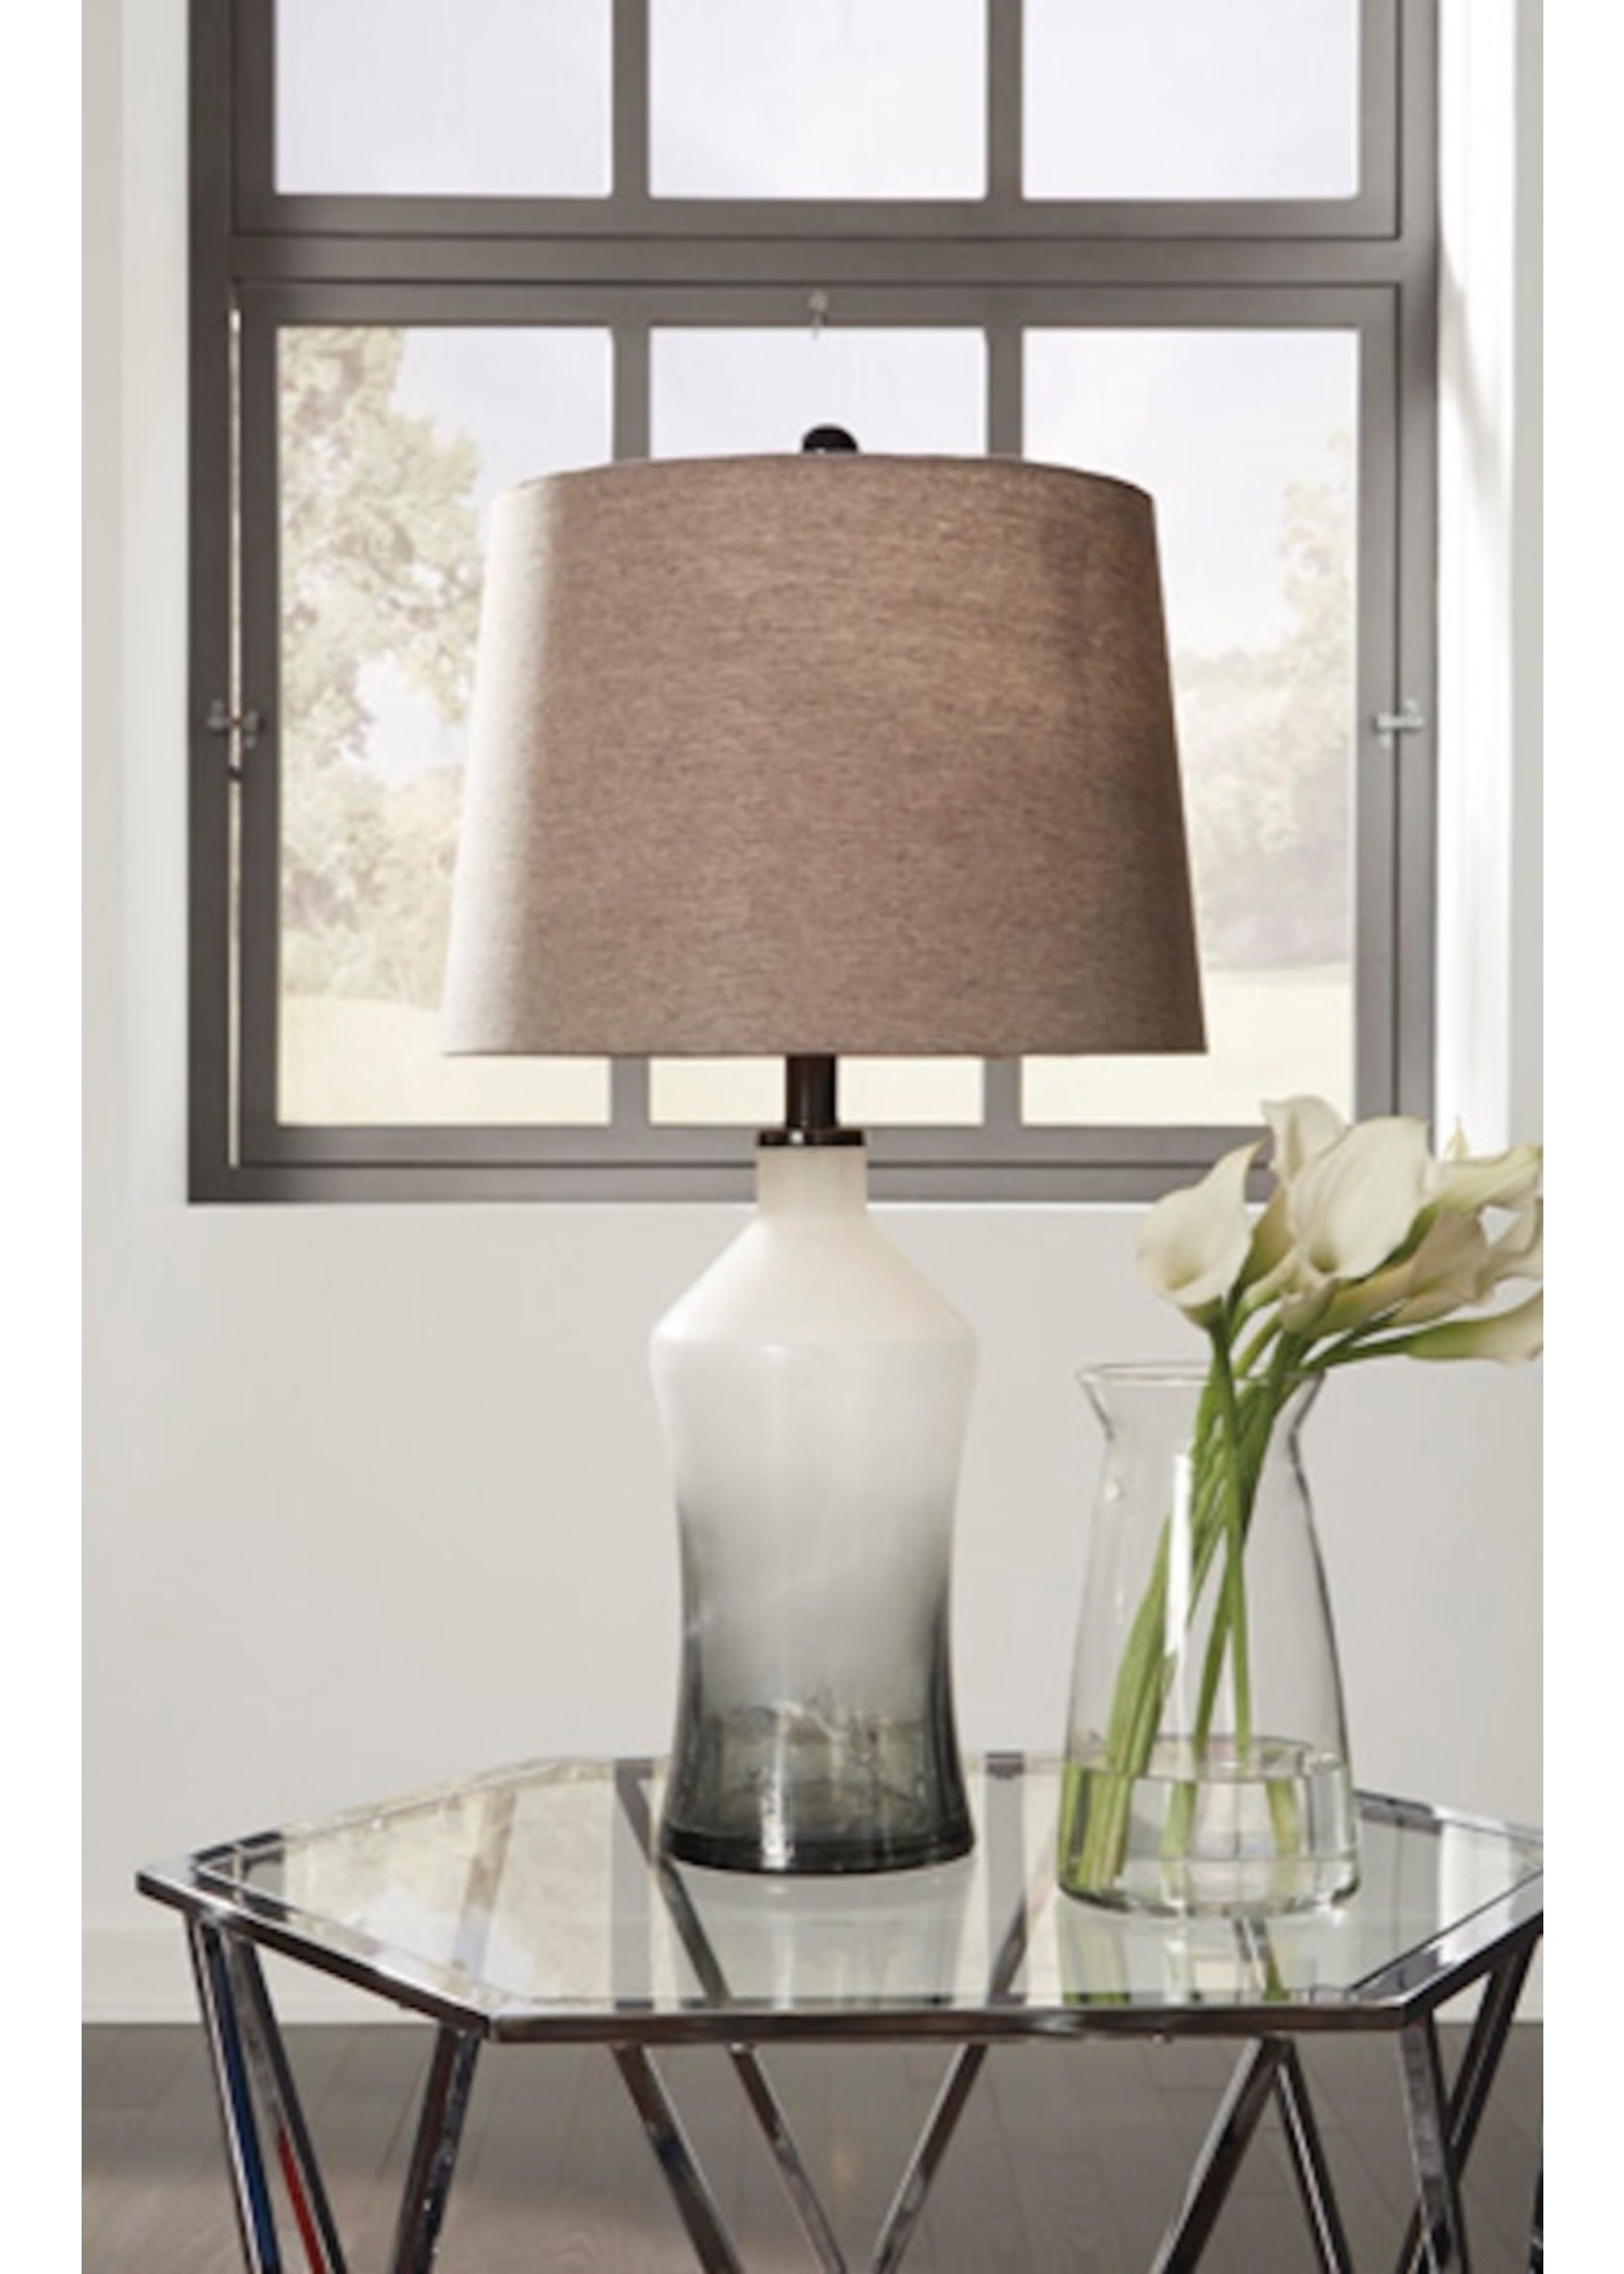 ASHLEY NOLLIE LAMP IN GRAY GLASS